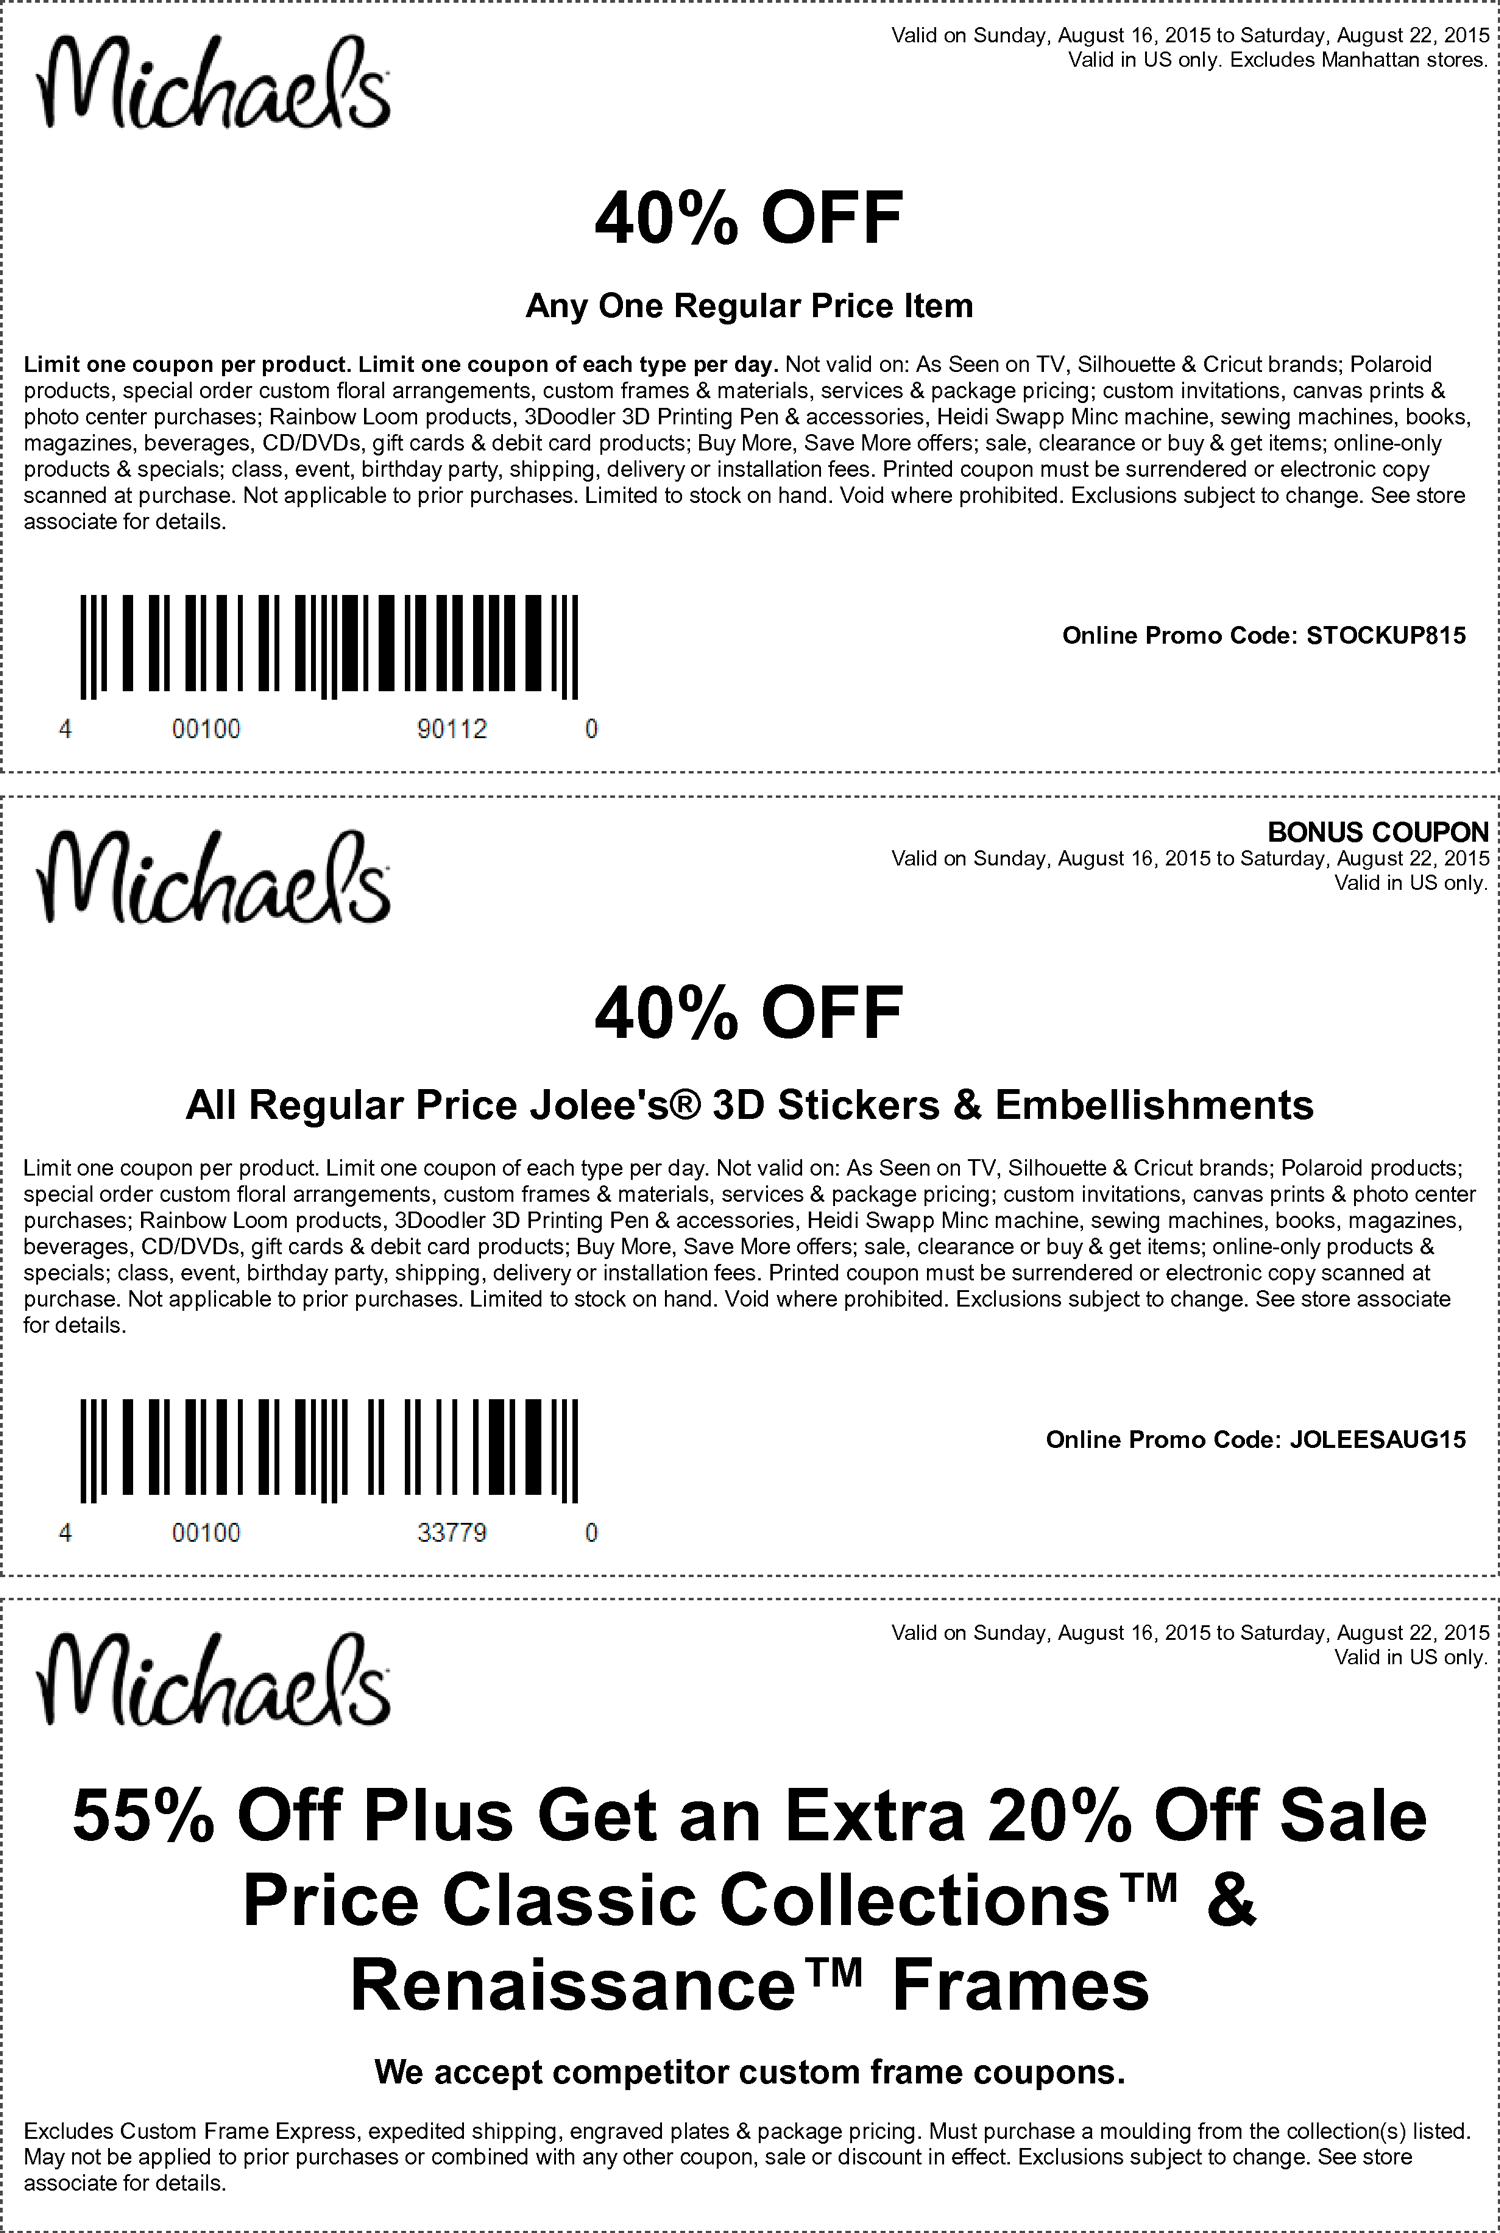 Michaels Coupon April 2017 40% off a single item & more at Michaels, or online via promo code STOCKUP815